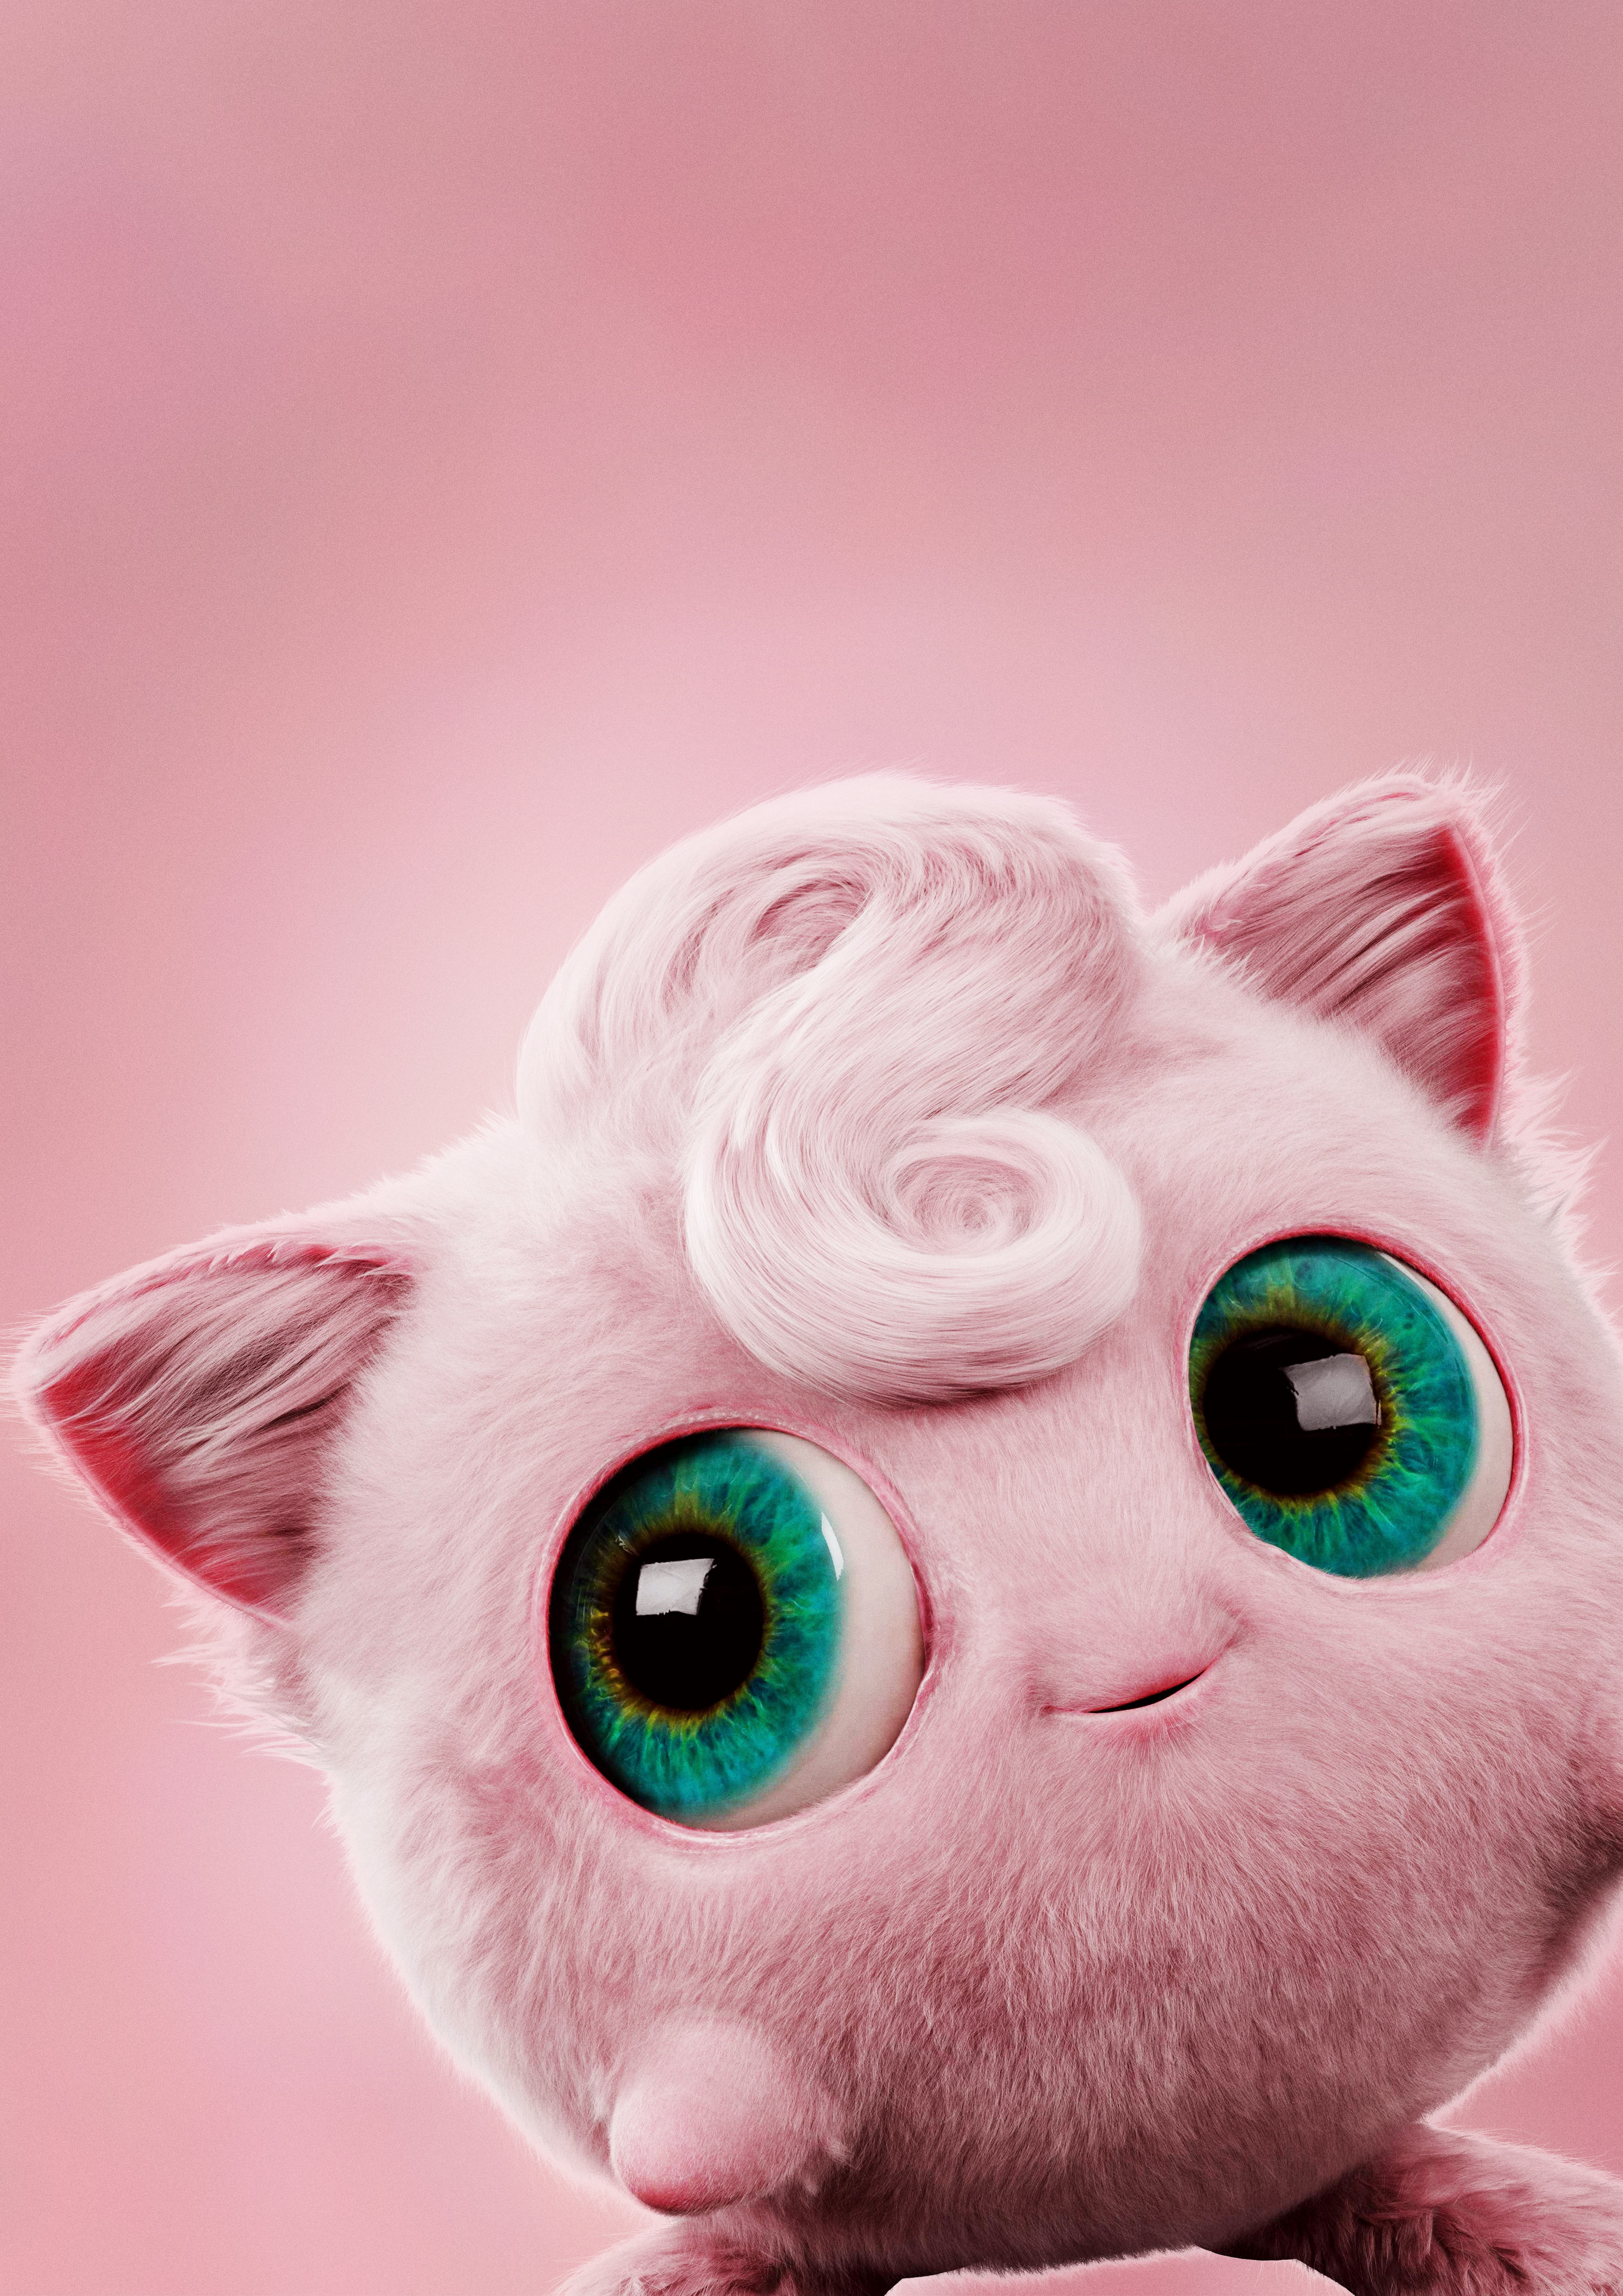 Jigglypuff In Pokemon Detective Pikachu Movie Wallpaper Hd Movies